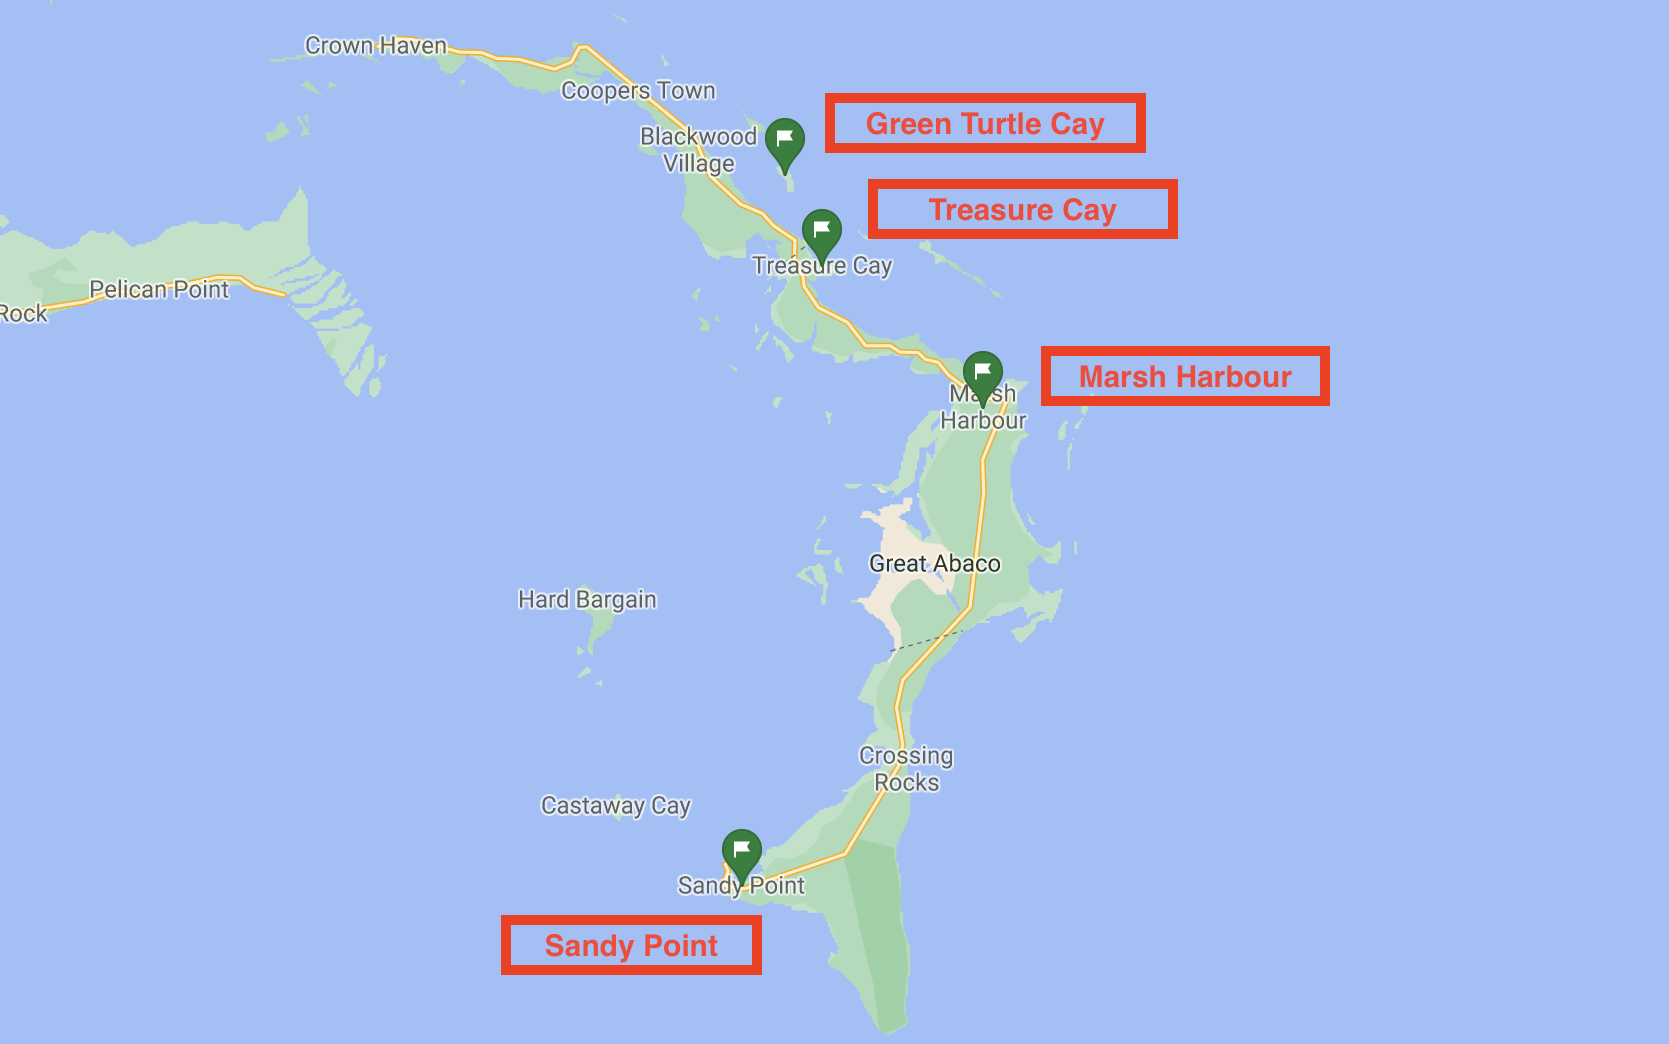 Map of Great Abaco ports of entry